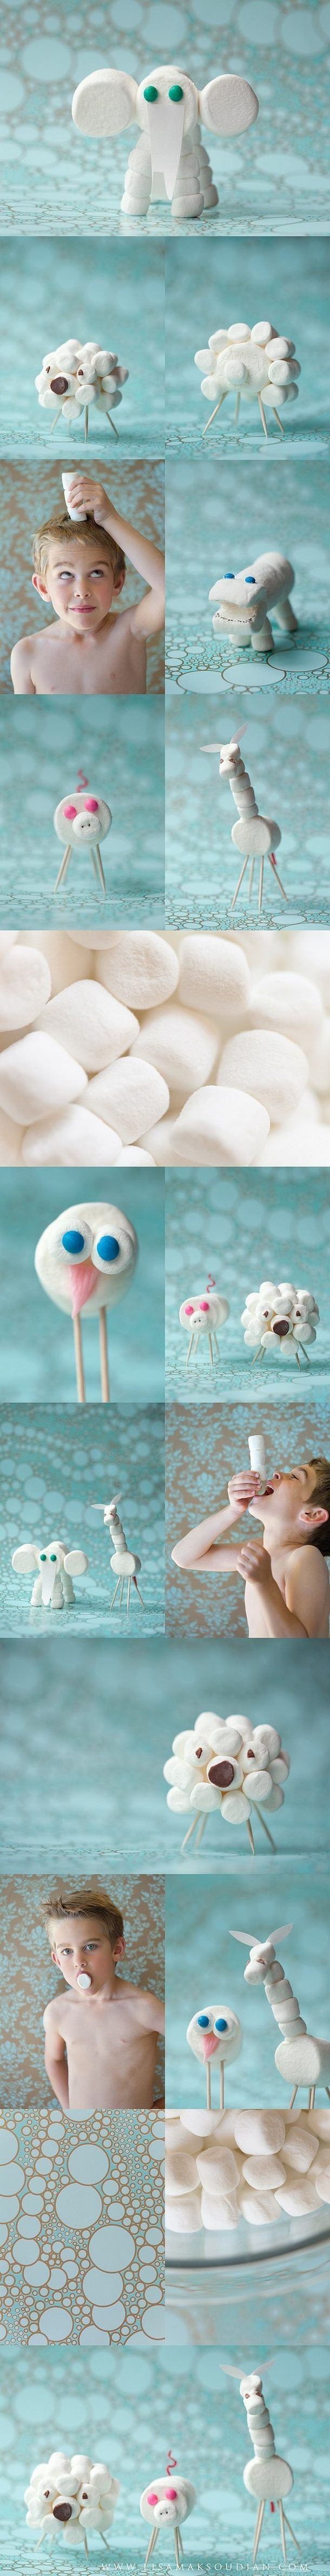 Marshmallows & toothpicks - great way for kids to create! can make animals or can also bring in marshmallow fondont for them to make a little mini edible sculpture